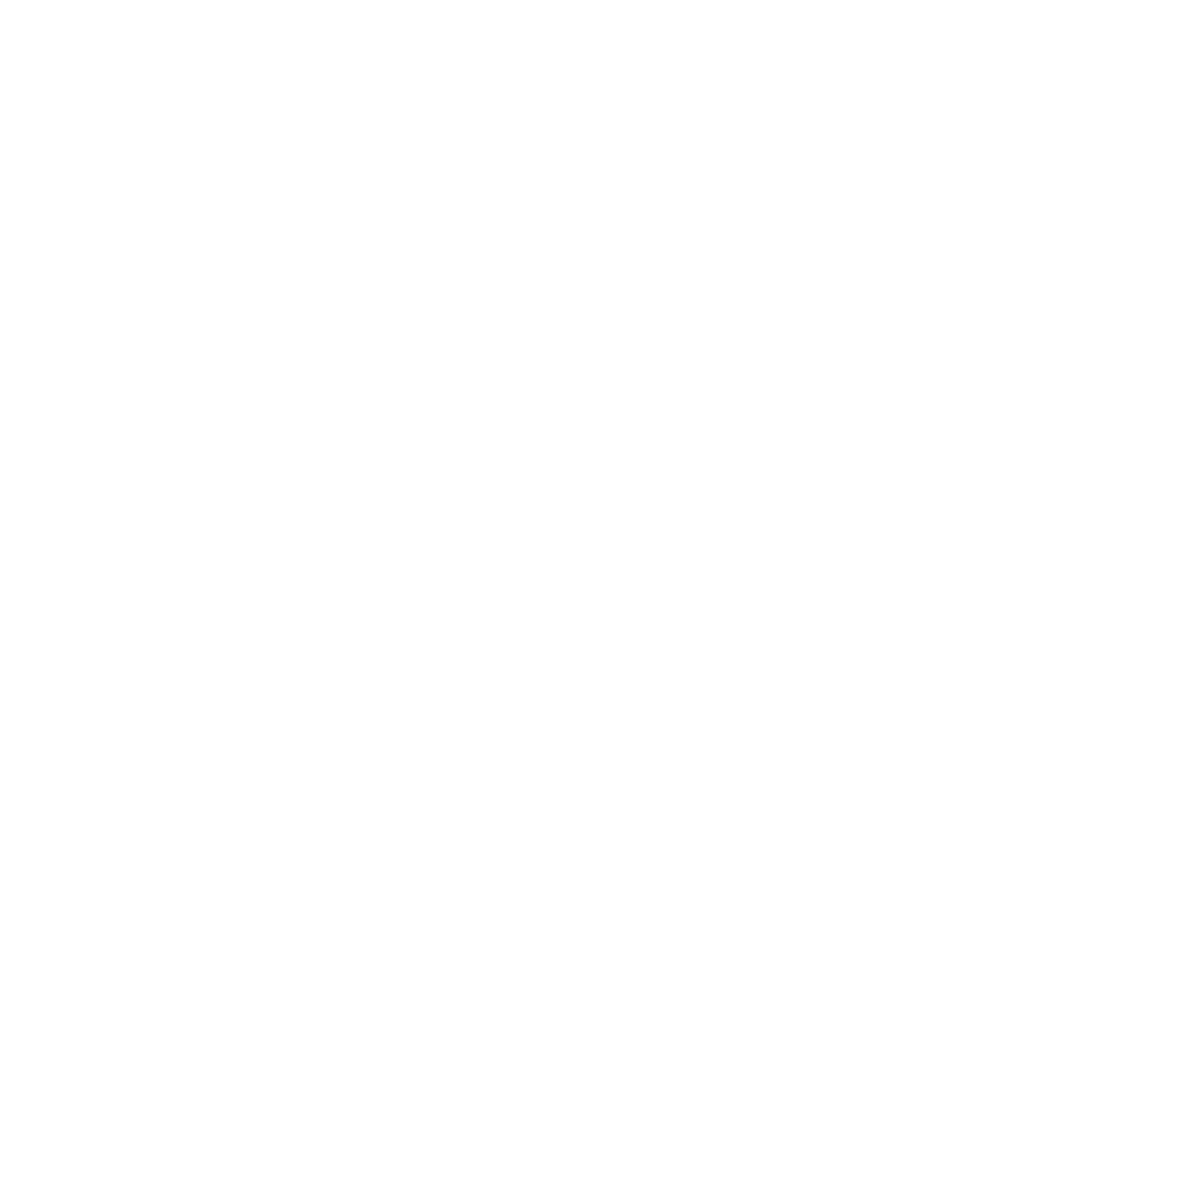 EFC_Logo_SImple_White_HighRes.png